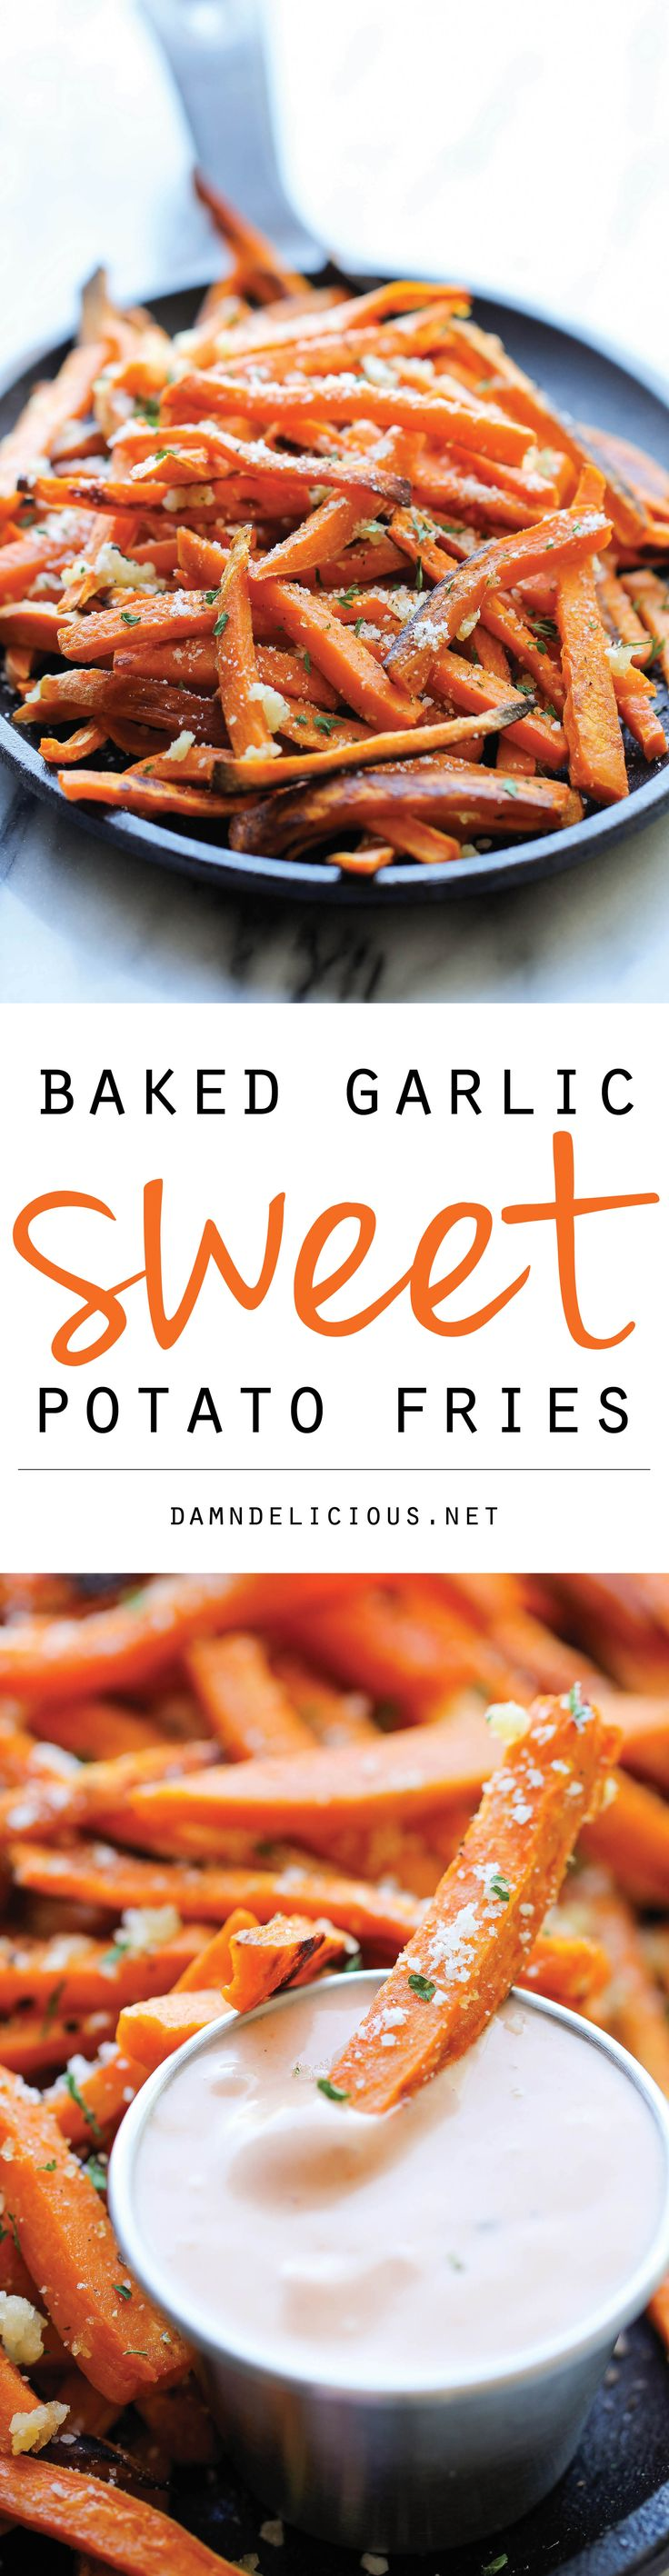 Baked Garlic Sweet Potato Fries – Amazingly crisp on the outside and tender on the inside, and so much better than the fried